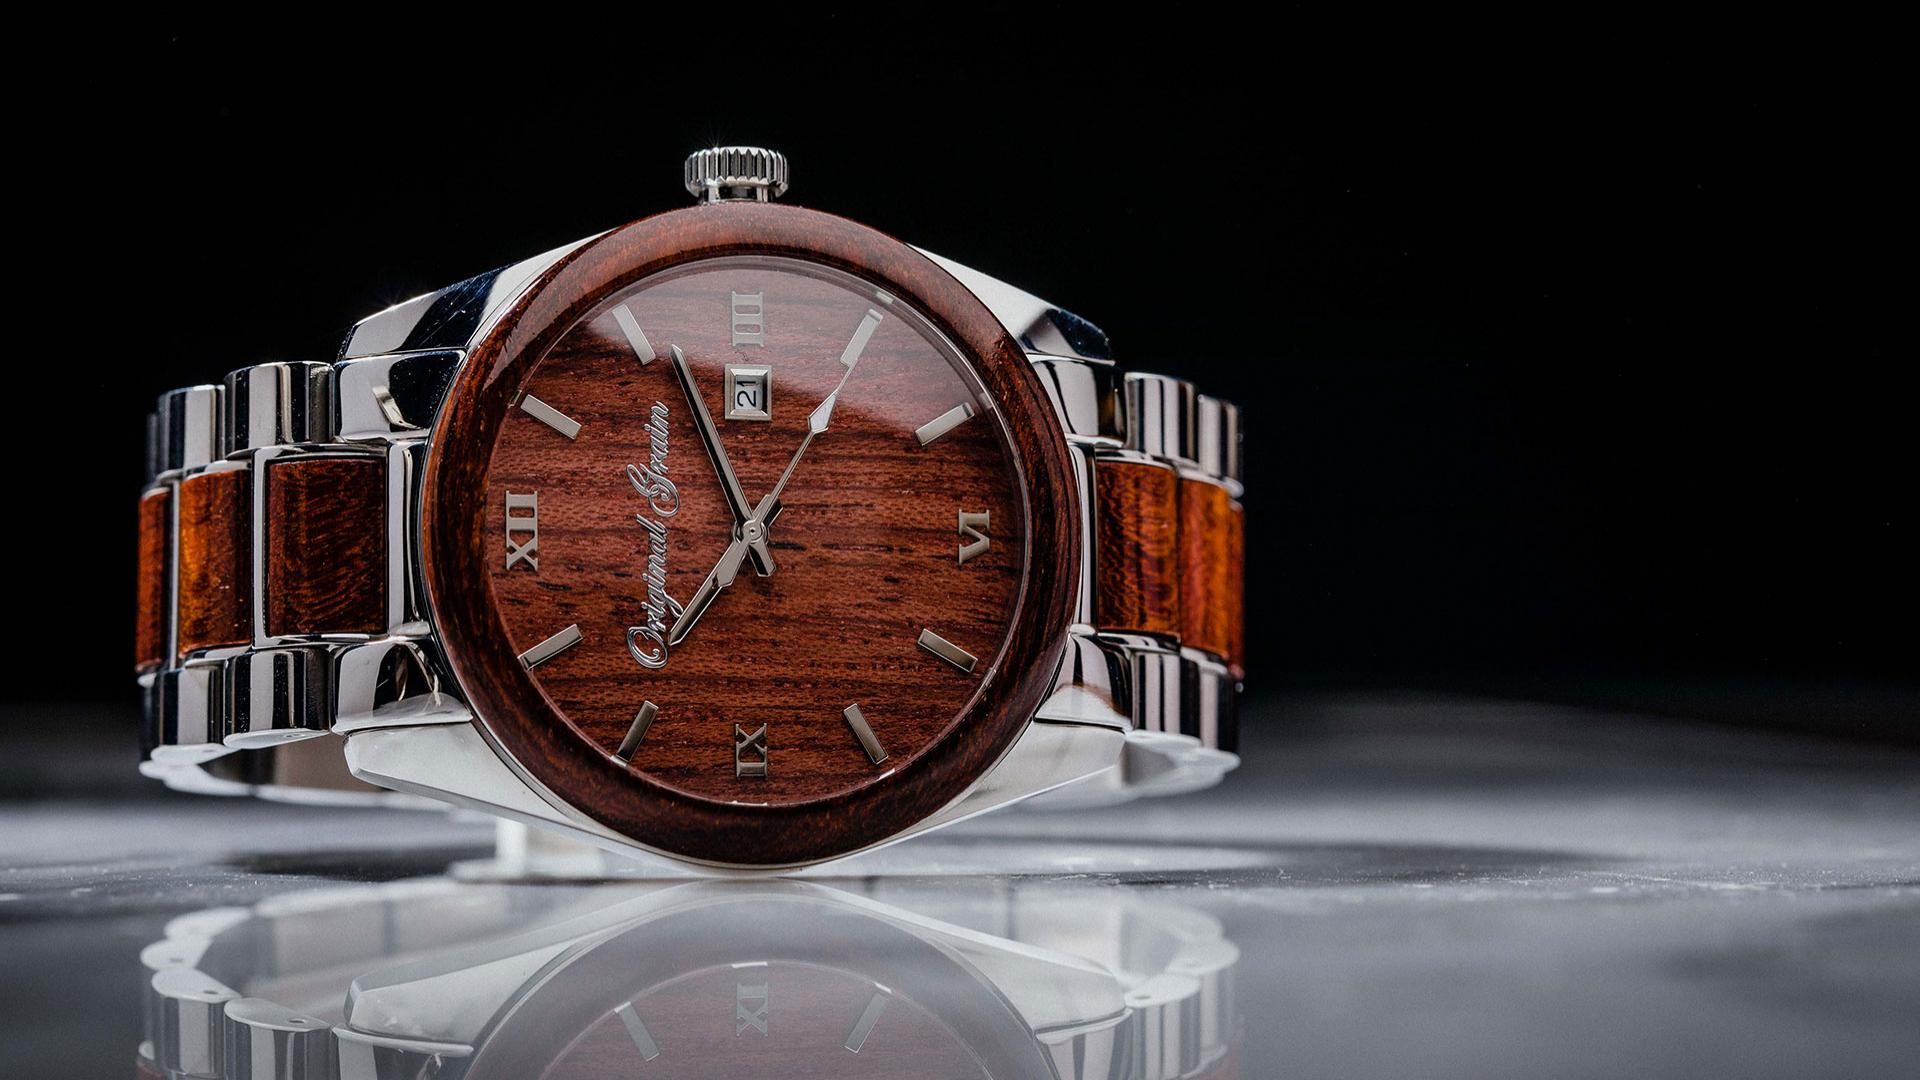 The Rosewood Classic - Handcrafted Process